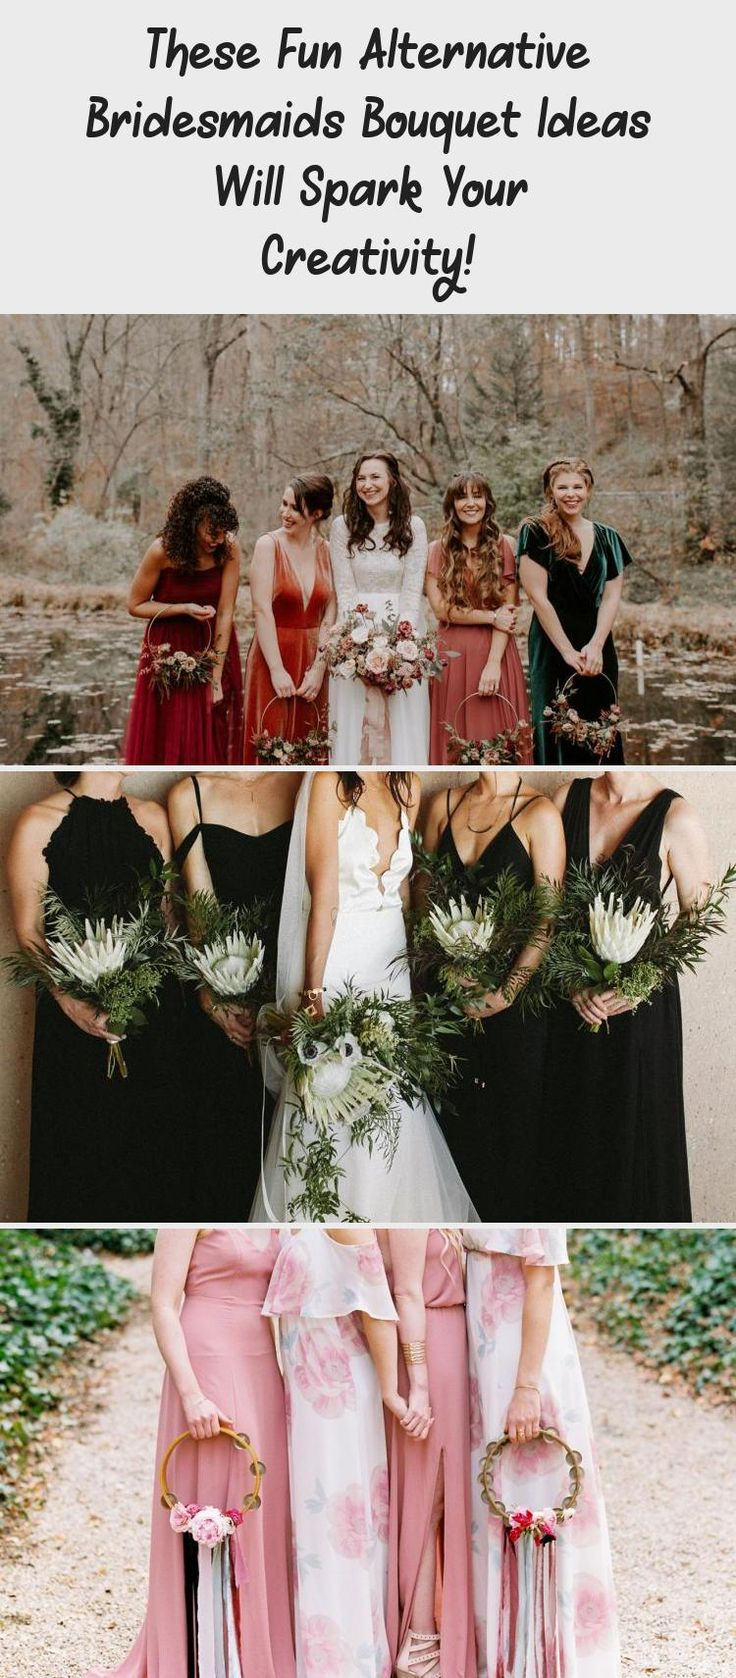 These Fun Alternative Bridesmaids Bouquet Ideas Will Spark Your Creativity! - Green Wedding Shoes #MixAndMatchBridesmaidDresses #BridesmaidDressesBeach #NeutralBridesmaidDresses #AfricanBridesmaidDresses #JuniorBridesmaidDresses